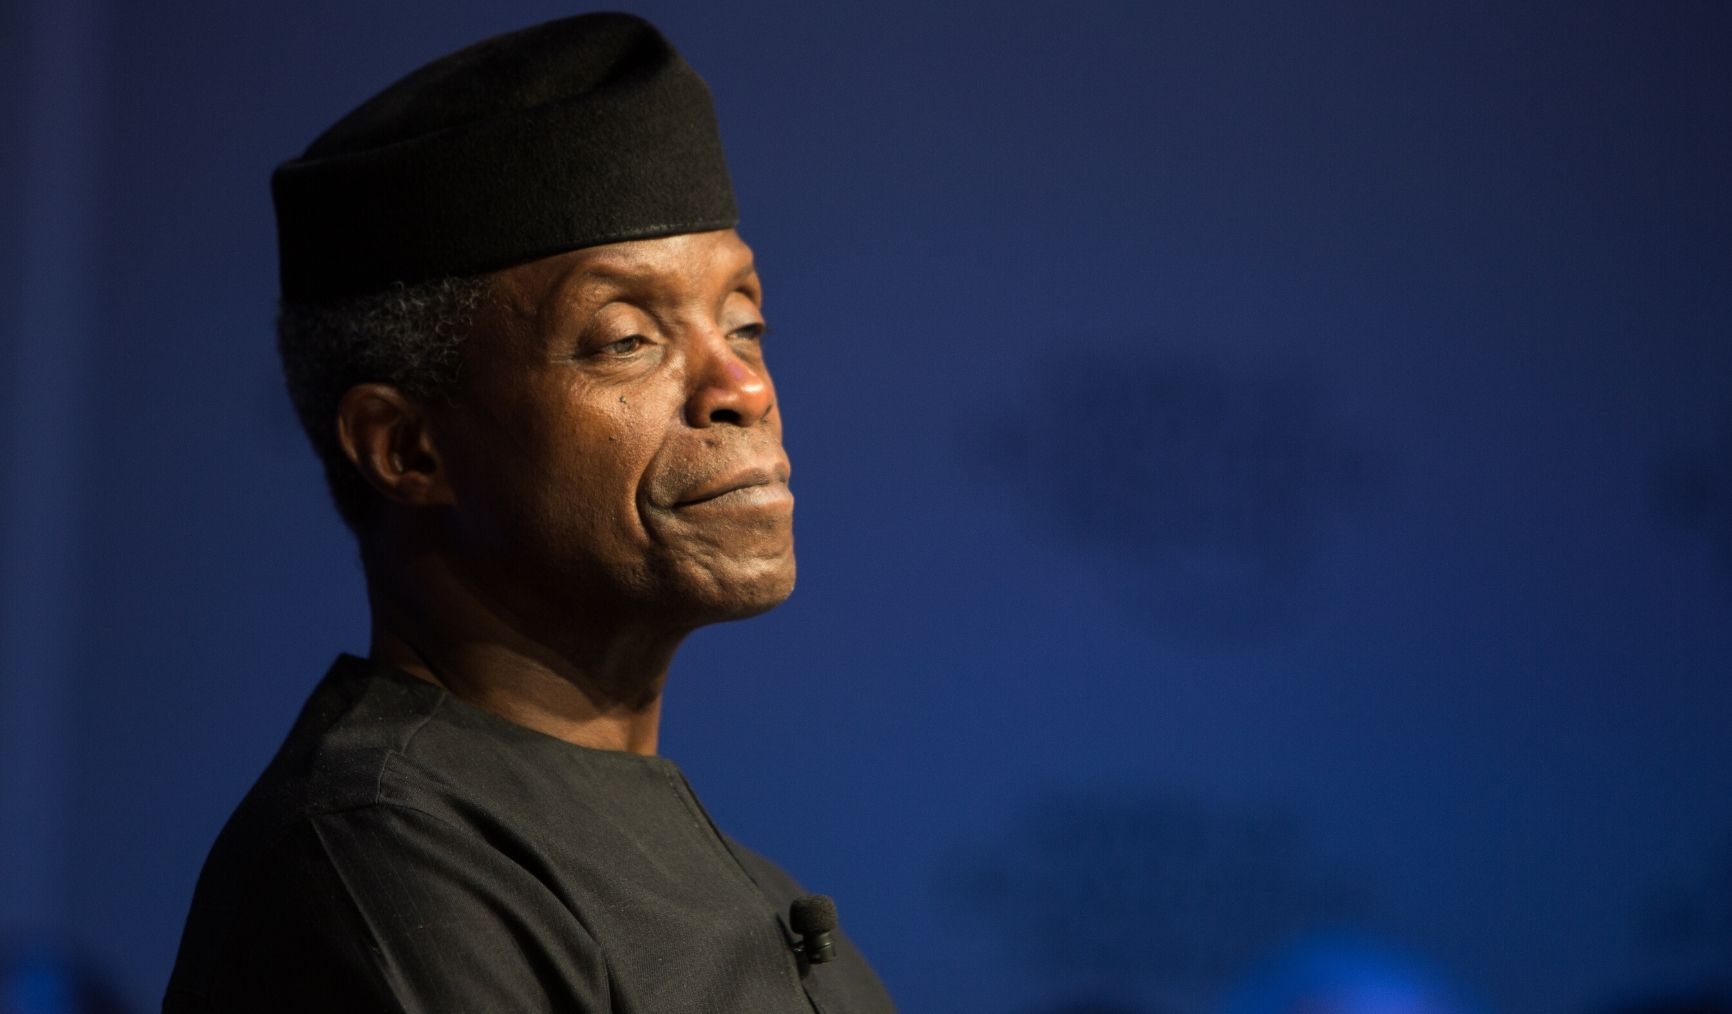 Daily Briefing: Osinbajo submits ₦2.3 trillion sustainability plan